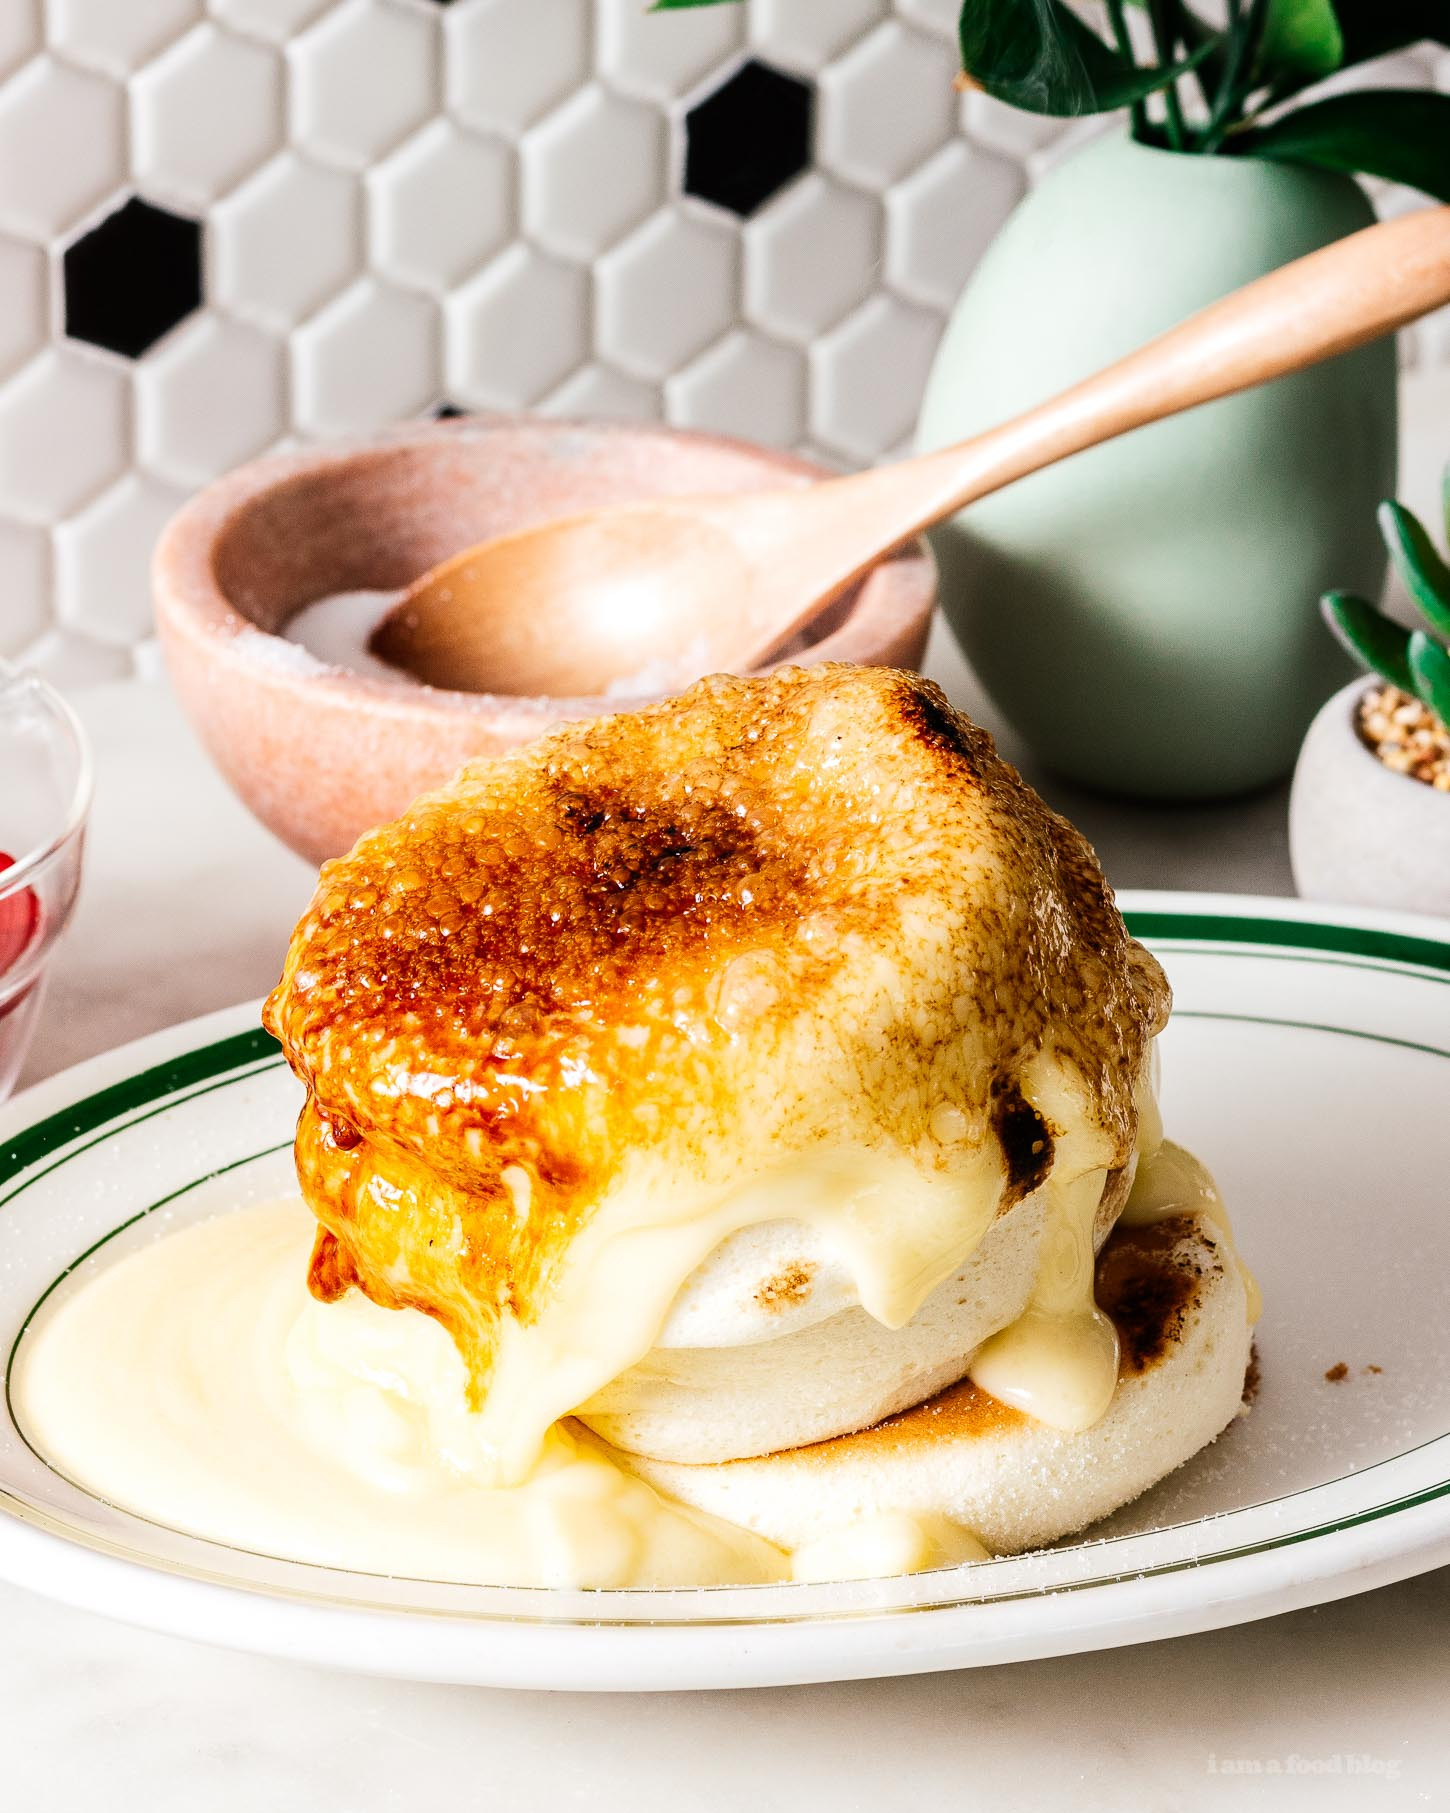 Do you want to eat fluffy Japanese soufflé creme brûlée pancakes but don't want to fly to Hong Kong or wait in a line for hours? This recipe is for you! Make the fluffy pancakes of your dreams, tall and fluffy with a creme brûlée crackling sugar crust. #pancakes #japanesepancakes #soufflepancakes #recipes #brunch